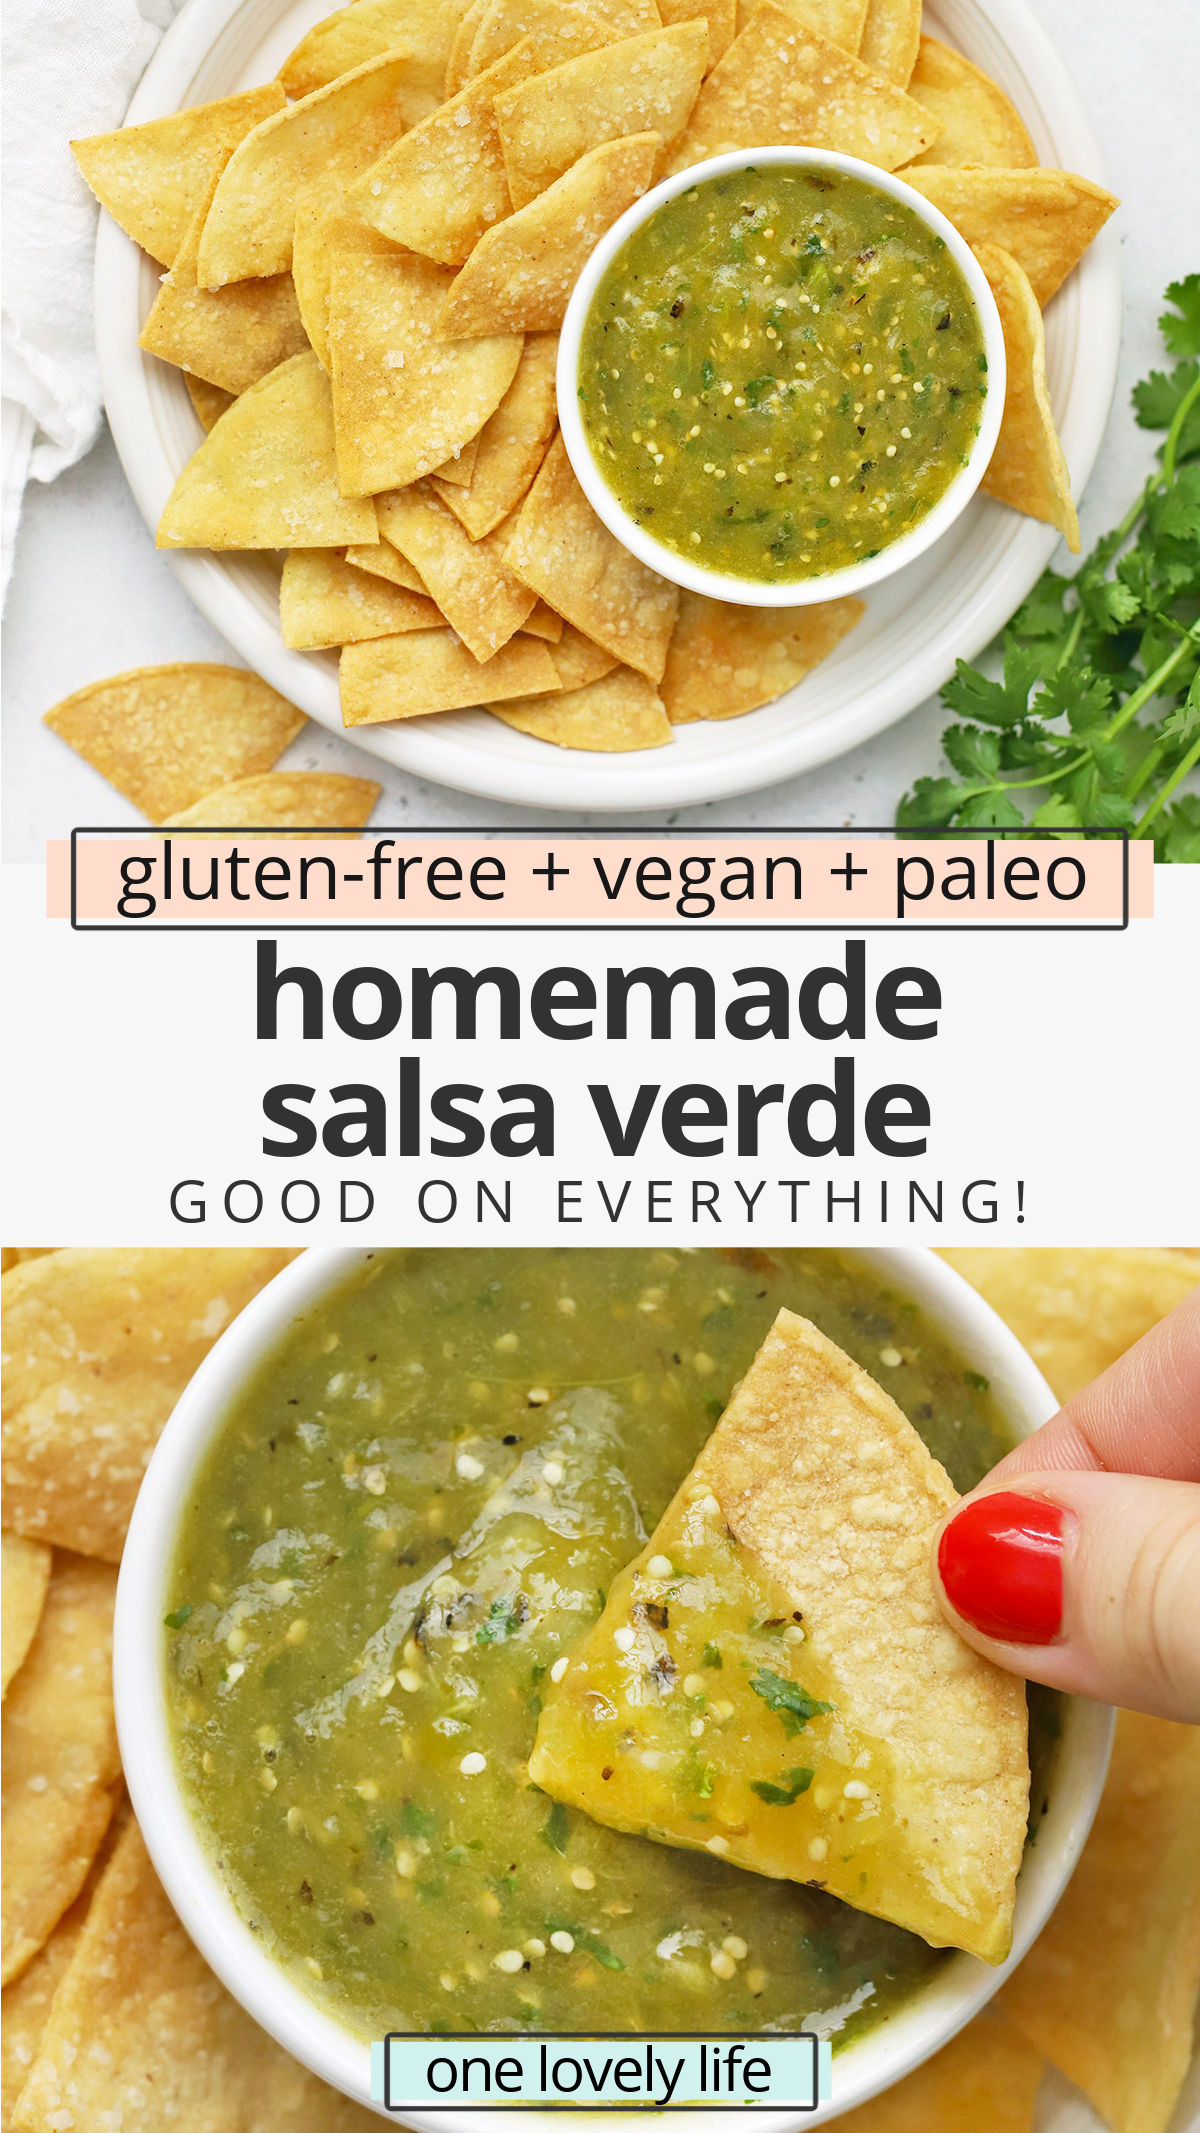 Homemade Salsa Verde - Made with tomatillos, this fresh green salsa is good on just about anything! Don't miss all our favorite ways to use it below. (Naturally vegan, paleo, and gluten-free) // Green Salsa Recipe // Salsa Verde Recipe // Tomatillo Salsa Recipe // Paleo Salsa // Vegan Salsa // Healthy Dip #salsa #salsaverde #greensalsa #appetizer #gamedayfood #partyfood